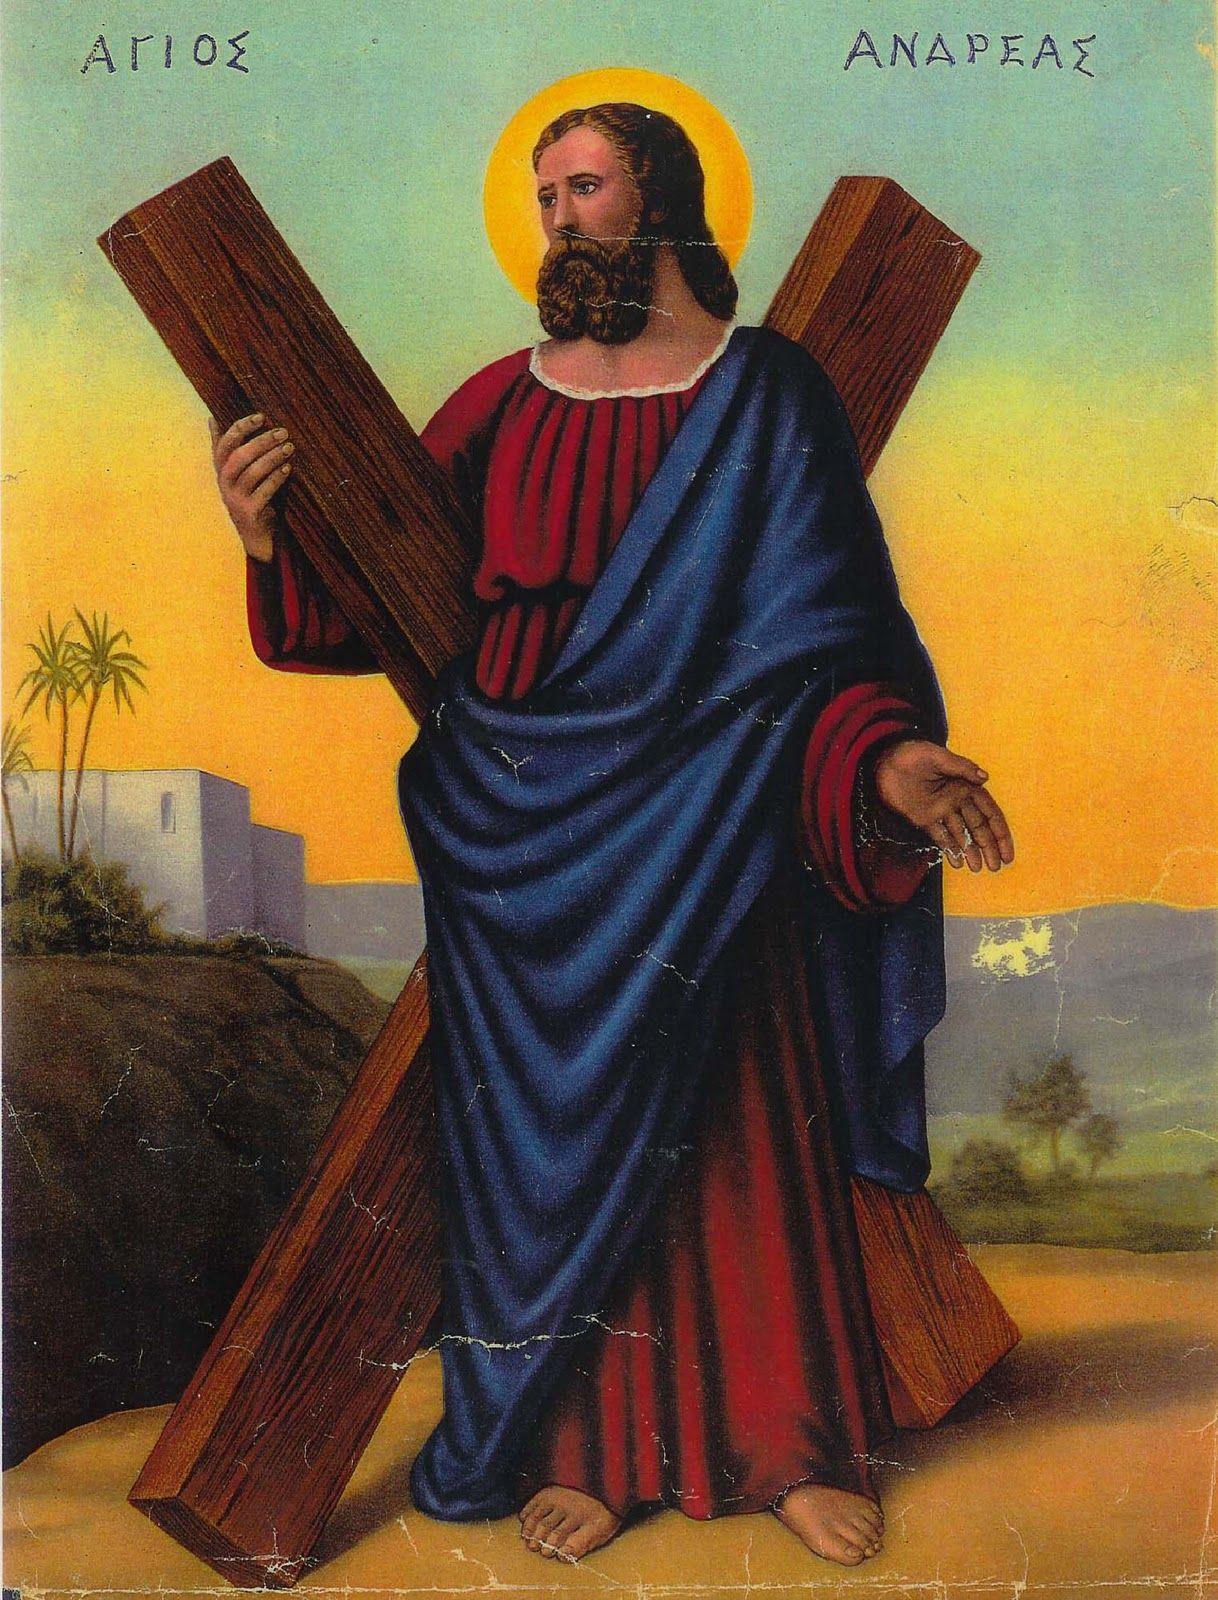 Apostle Andrew and his devotion to Christ